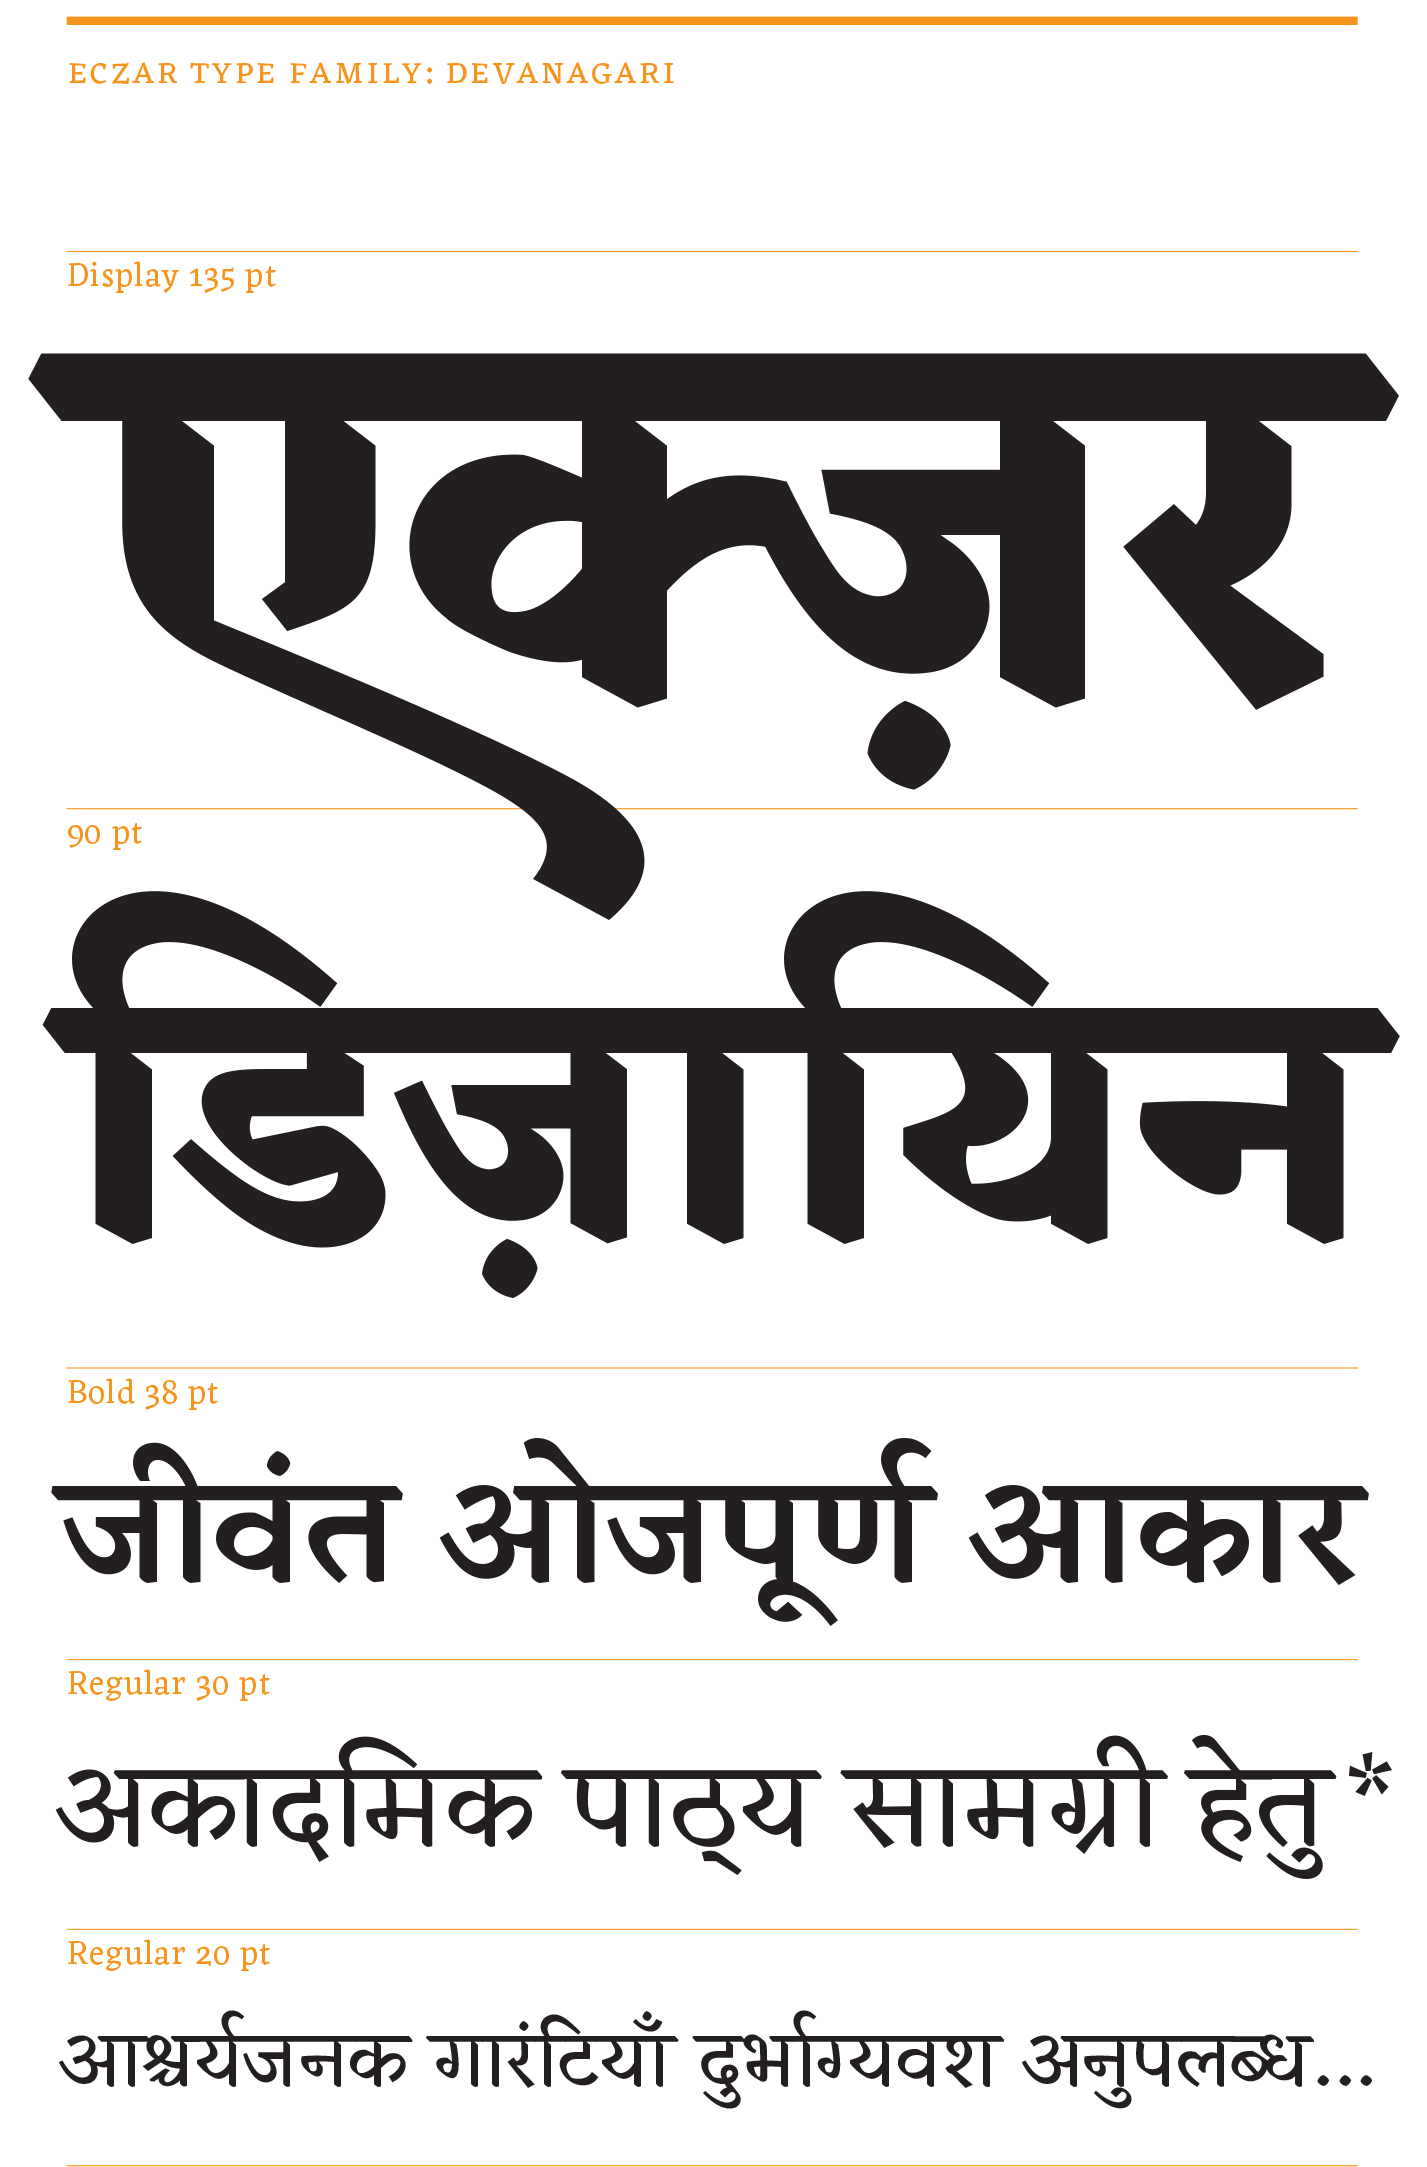 Vaibhav Singh's Devanagari [PDF] explores changes in pen shapes as the weight moves towards a Black Display.